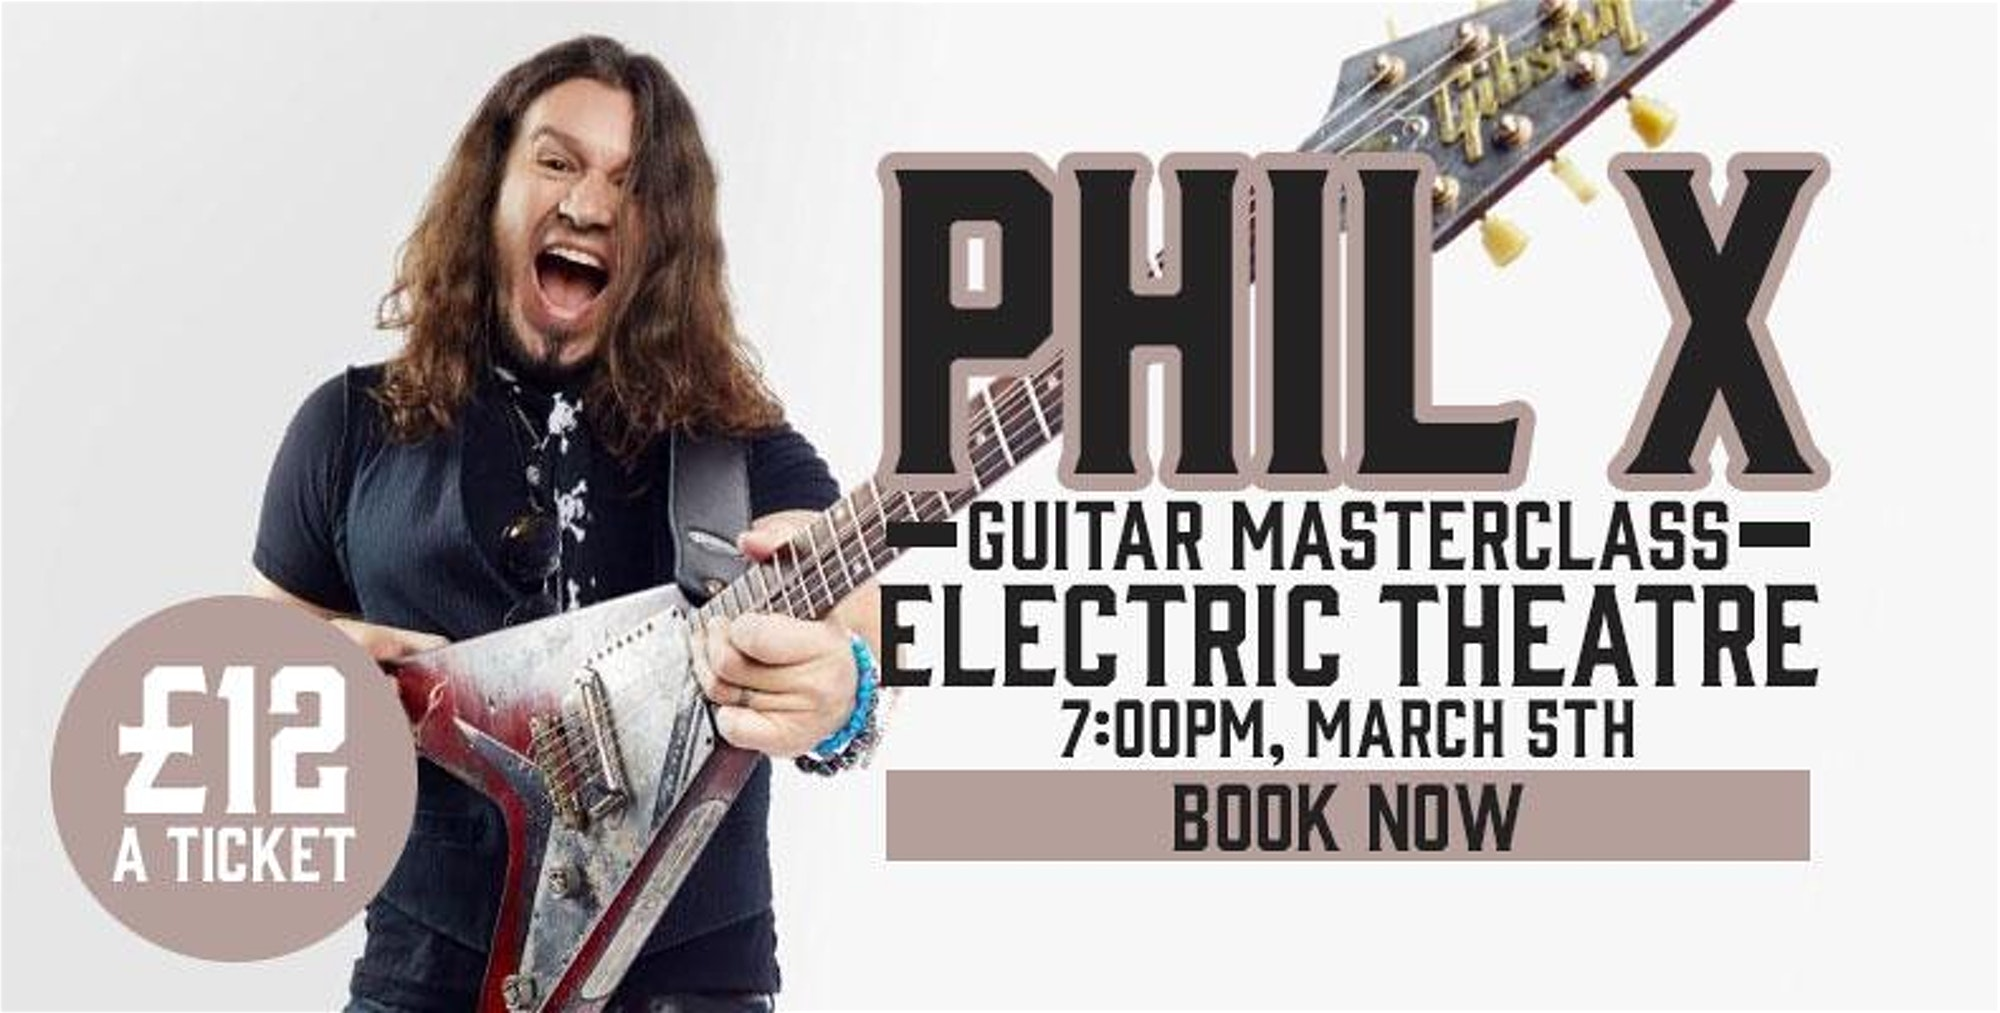 Phil X Masterclass in guilford, UK advertising 2020.